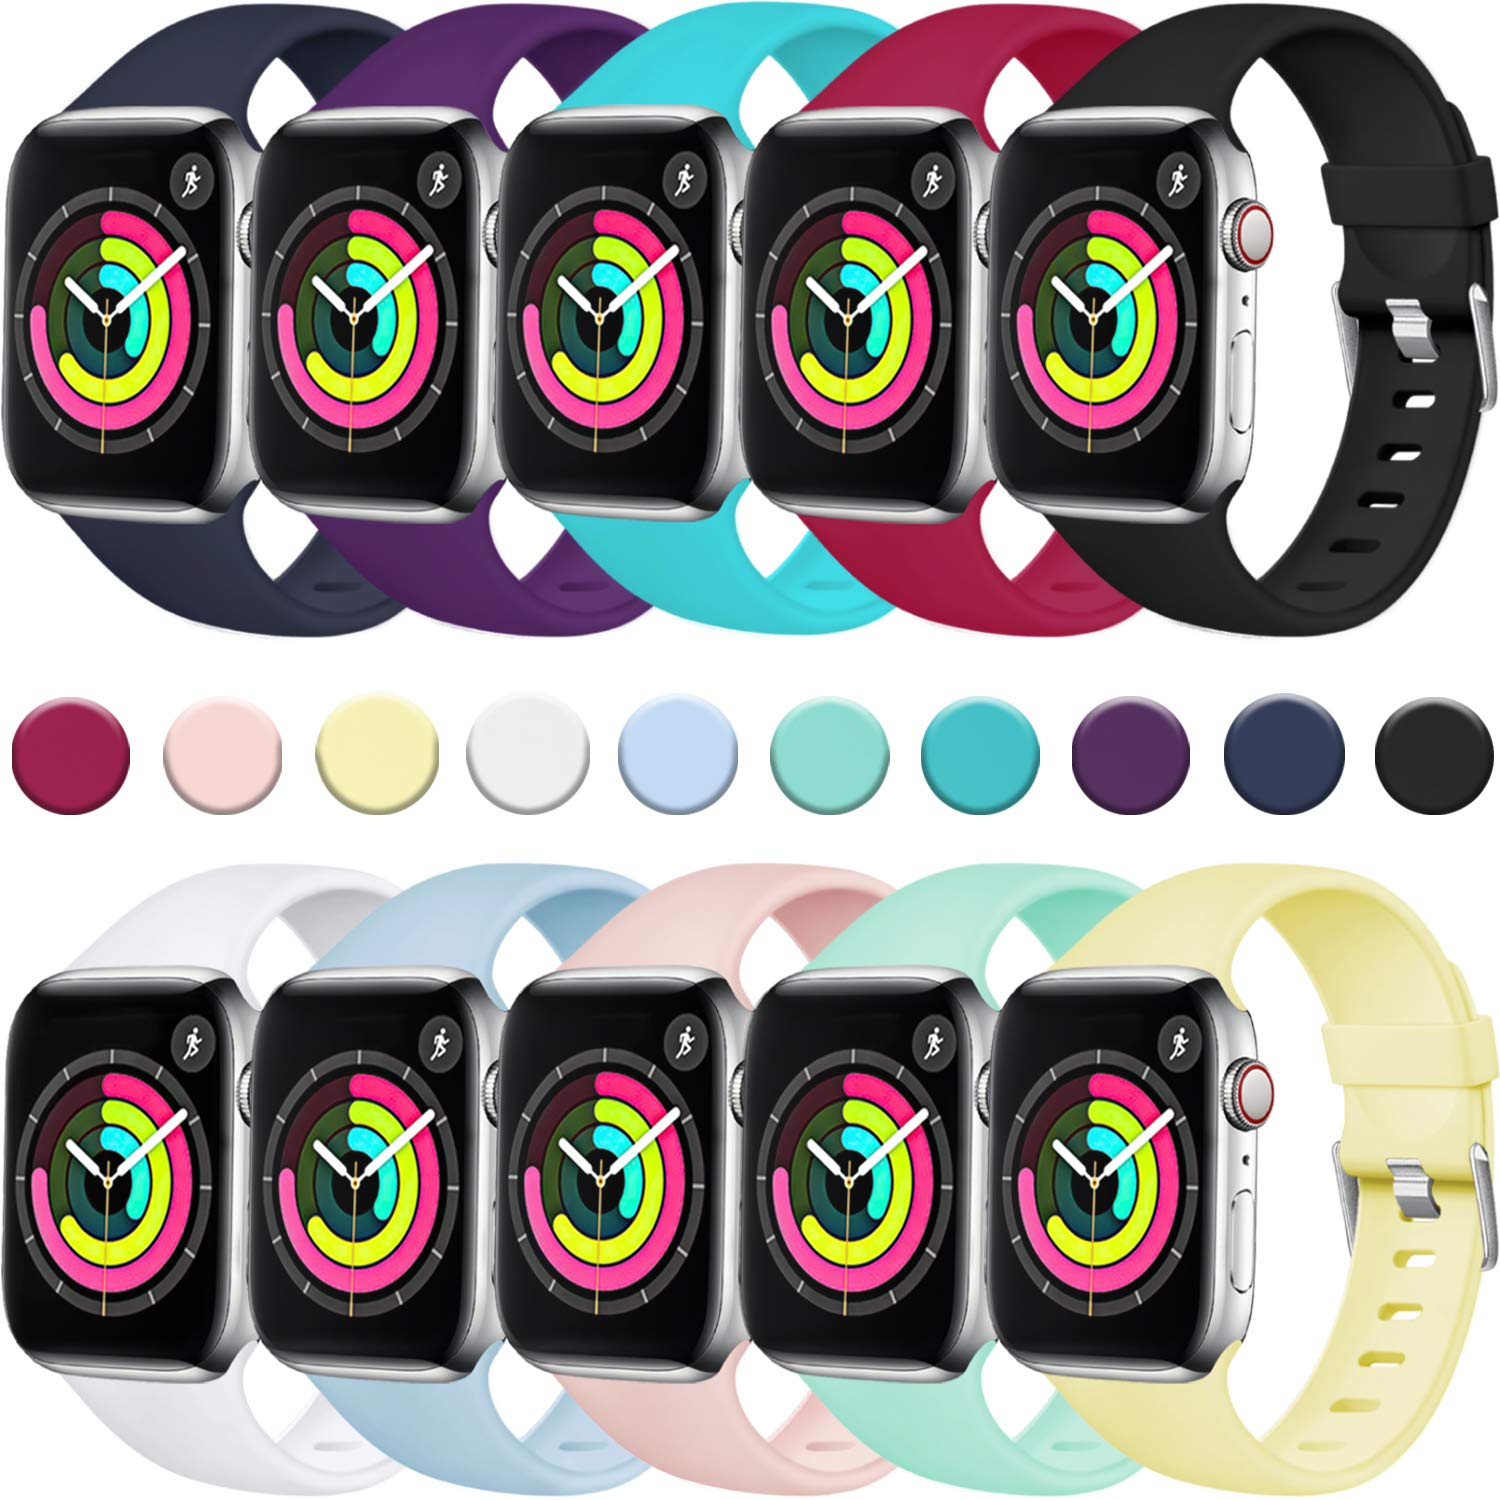 Laffav Sport Band Compatible with Apple Watch 40mm 38mm iWatch Series 4 3 2 1 for Women Men, 10 Pack, S/M